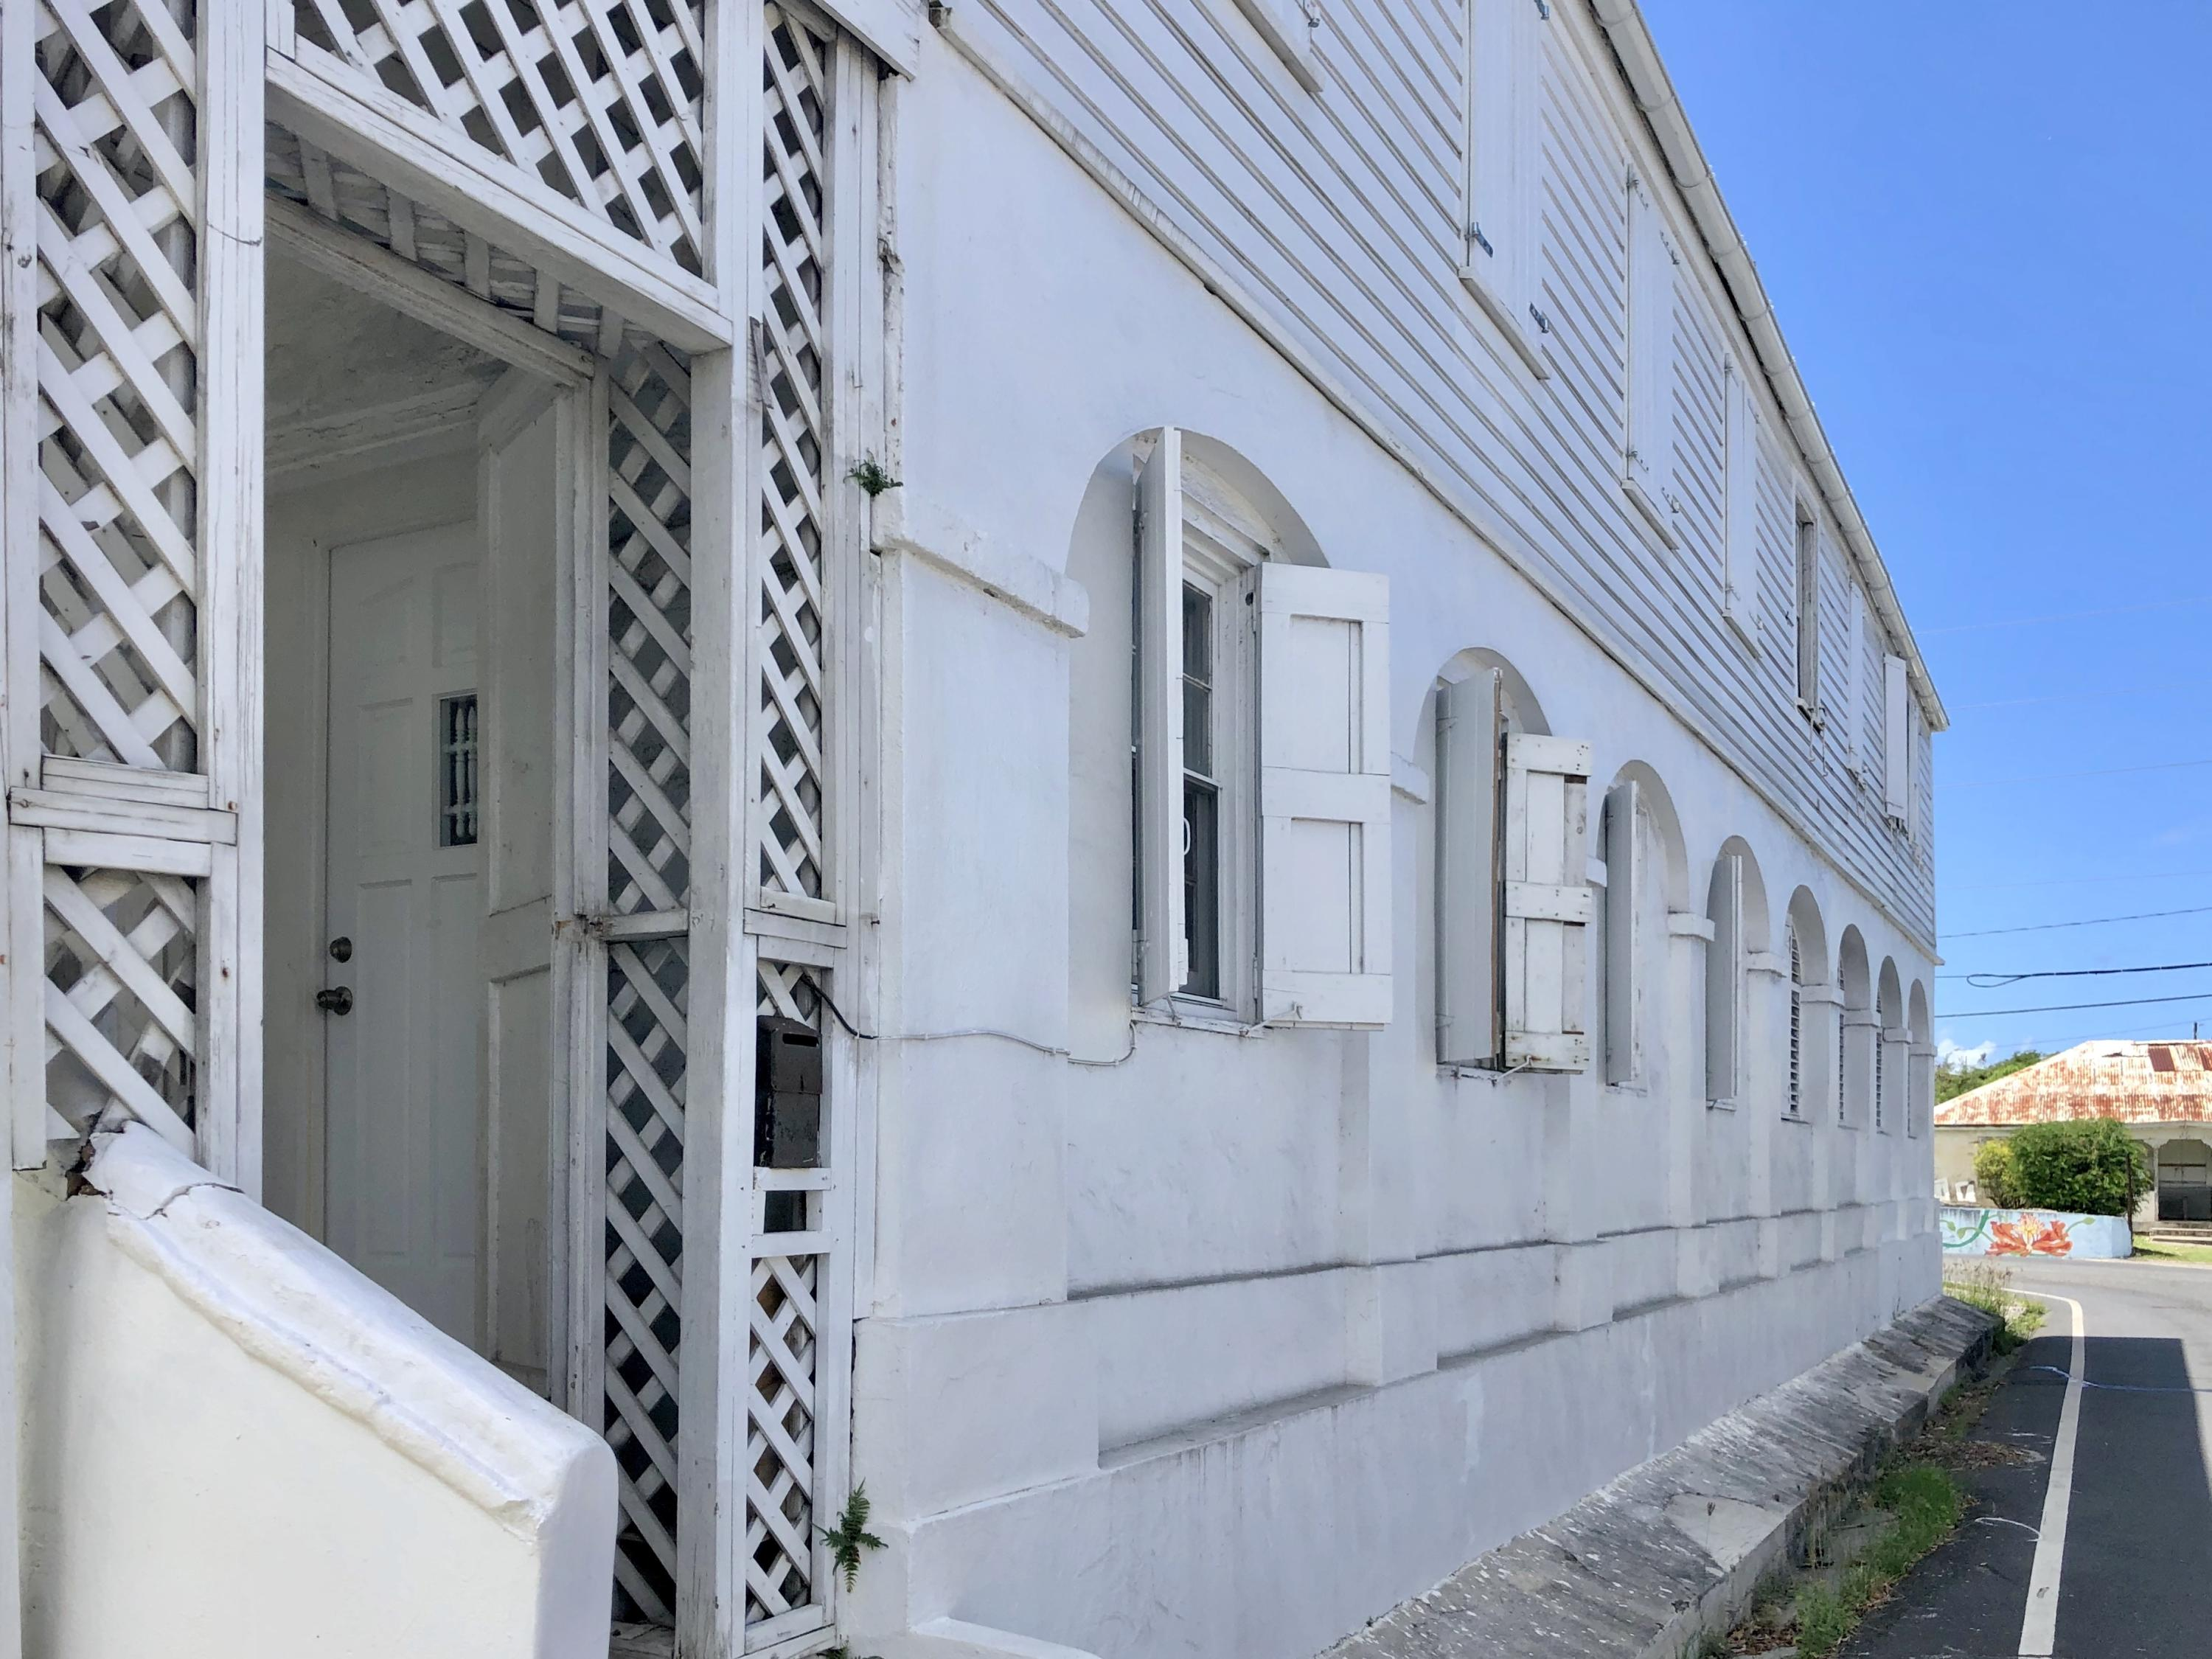 RE/MAX real estate, US Virgin Islands, Queens Estate, Price Reduced  Res Rental  Queen Street FSTED